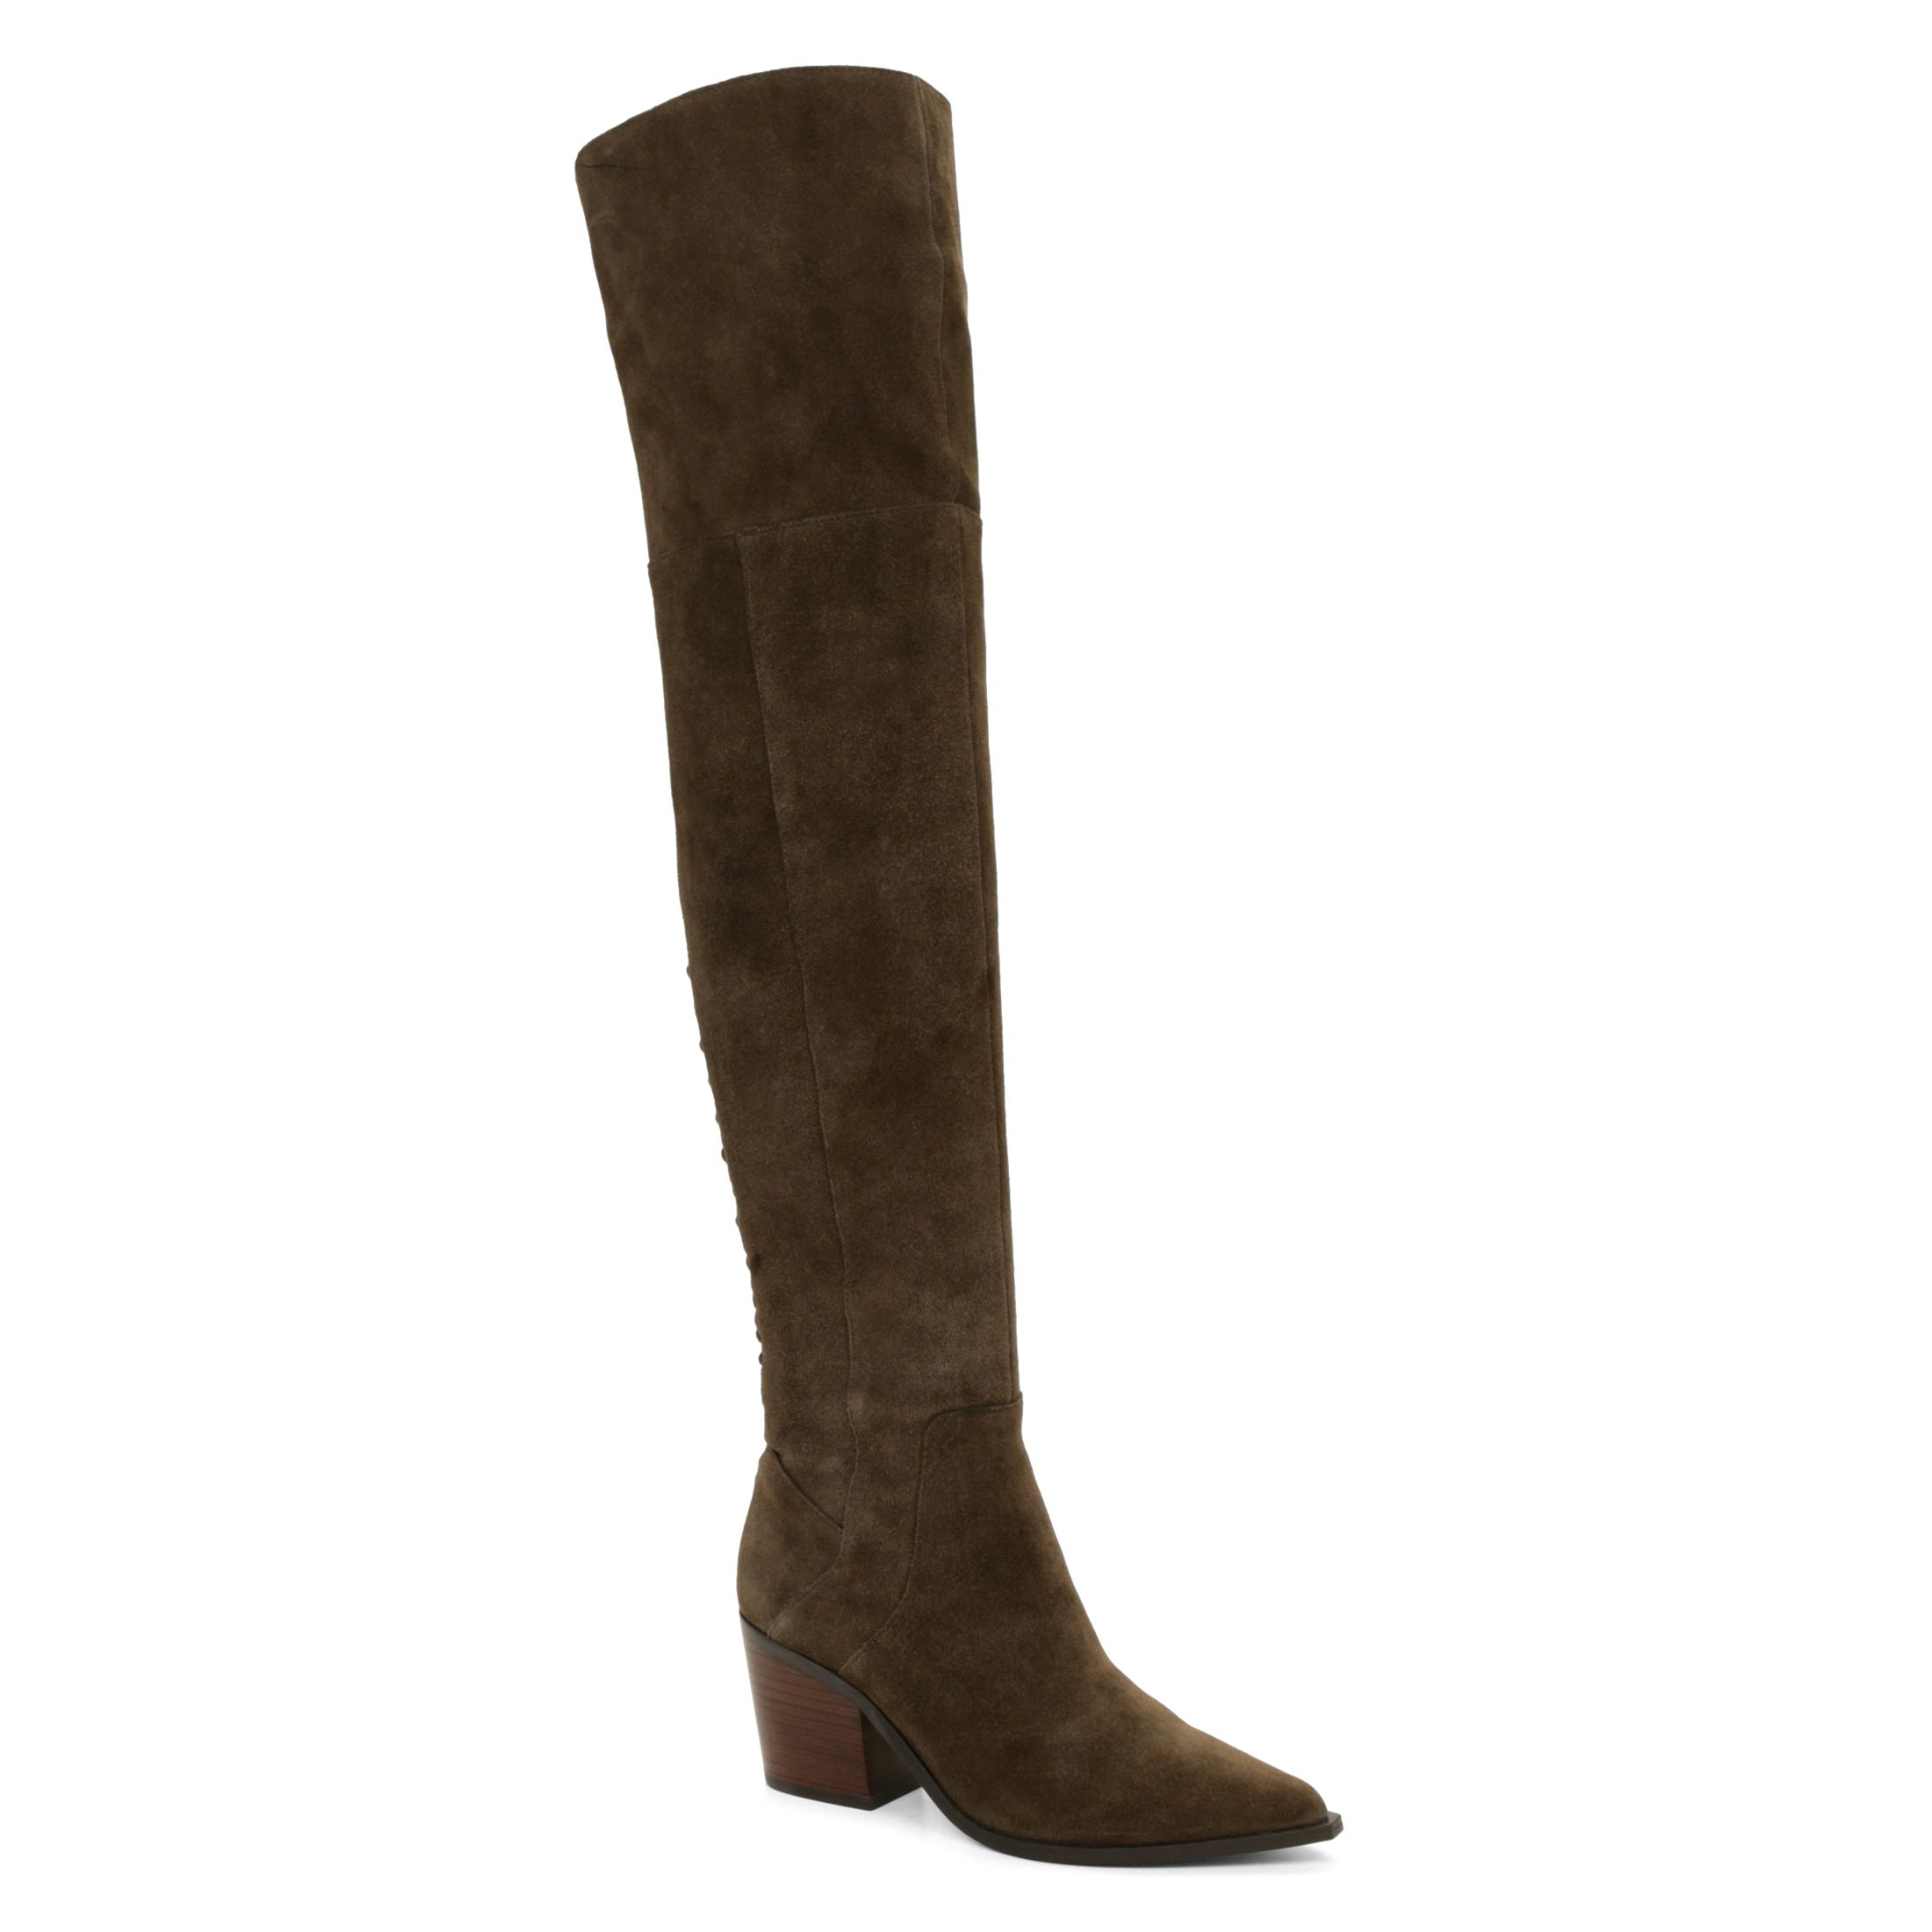 Aldo Haskova Pointed Toe Over The Knee Boot in Brown | Lyst